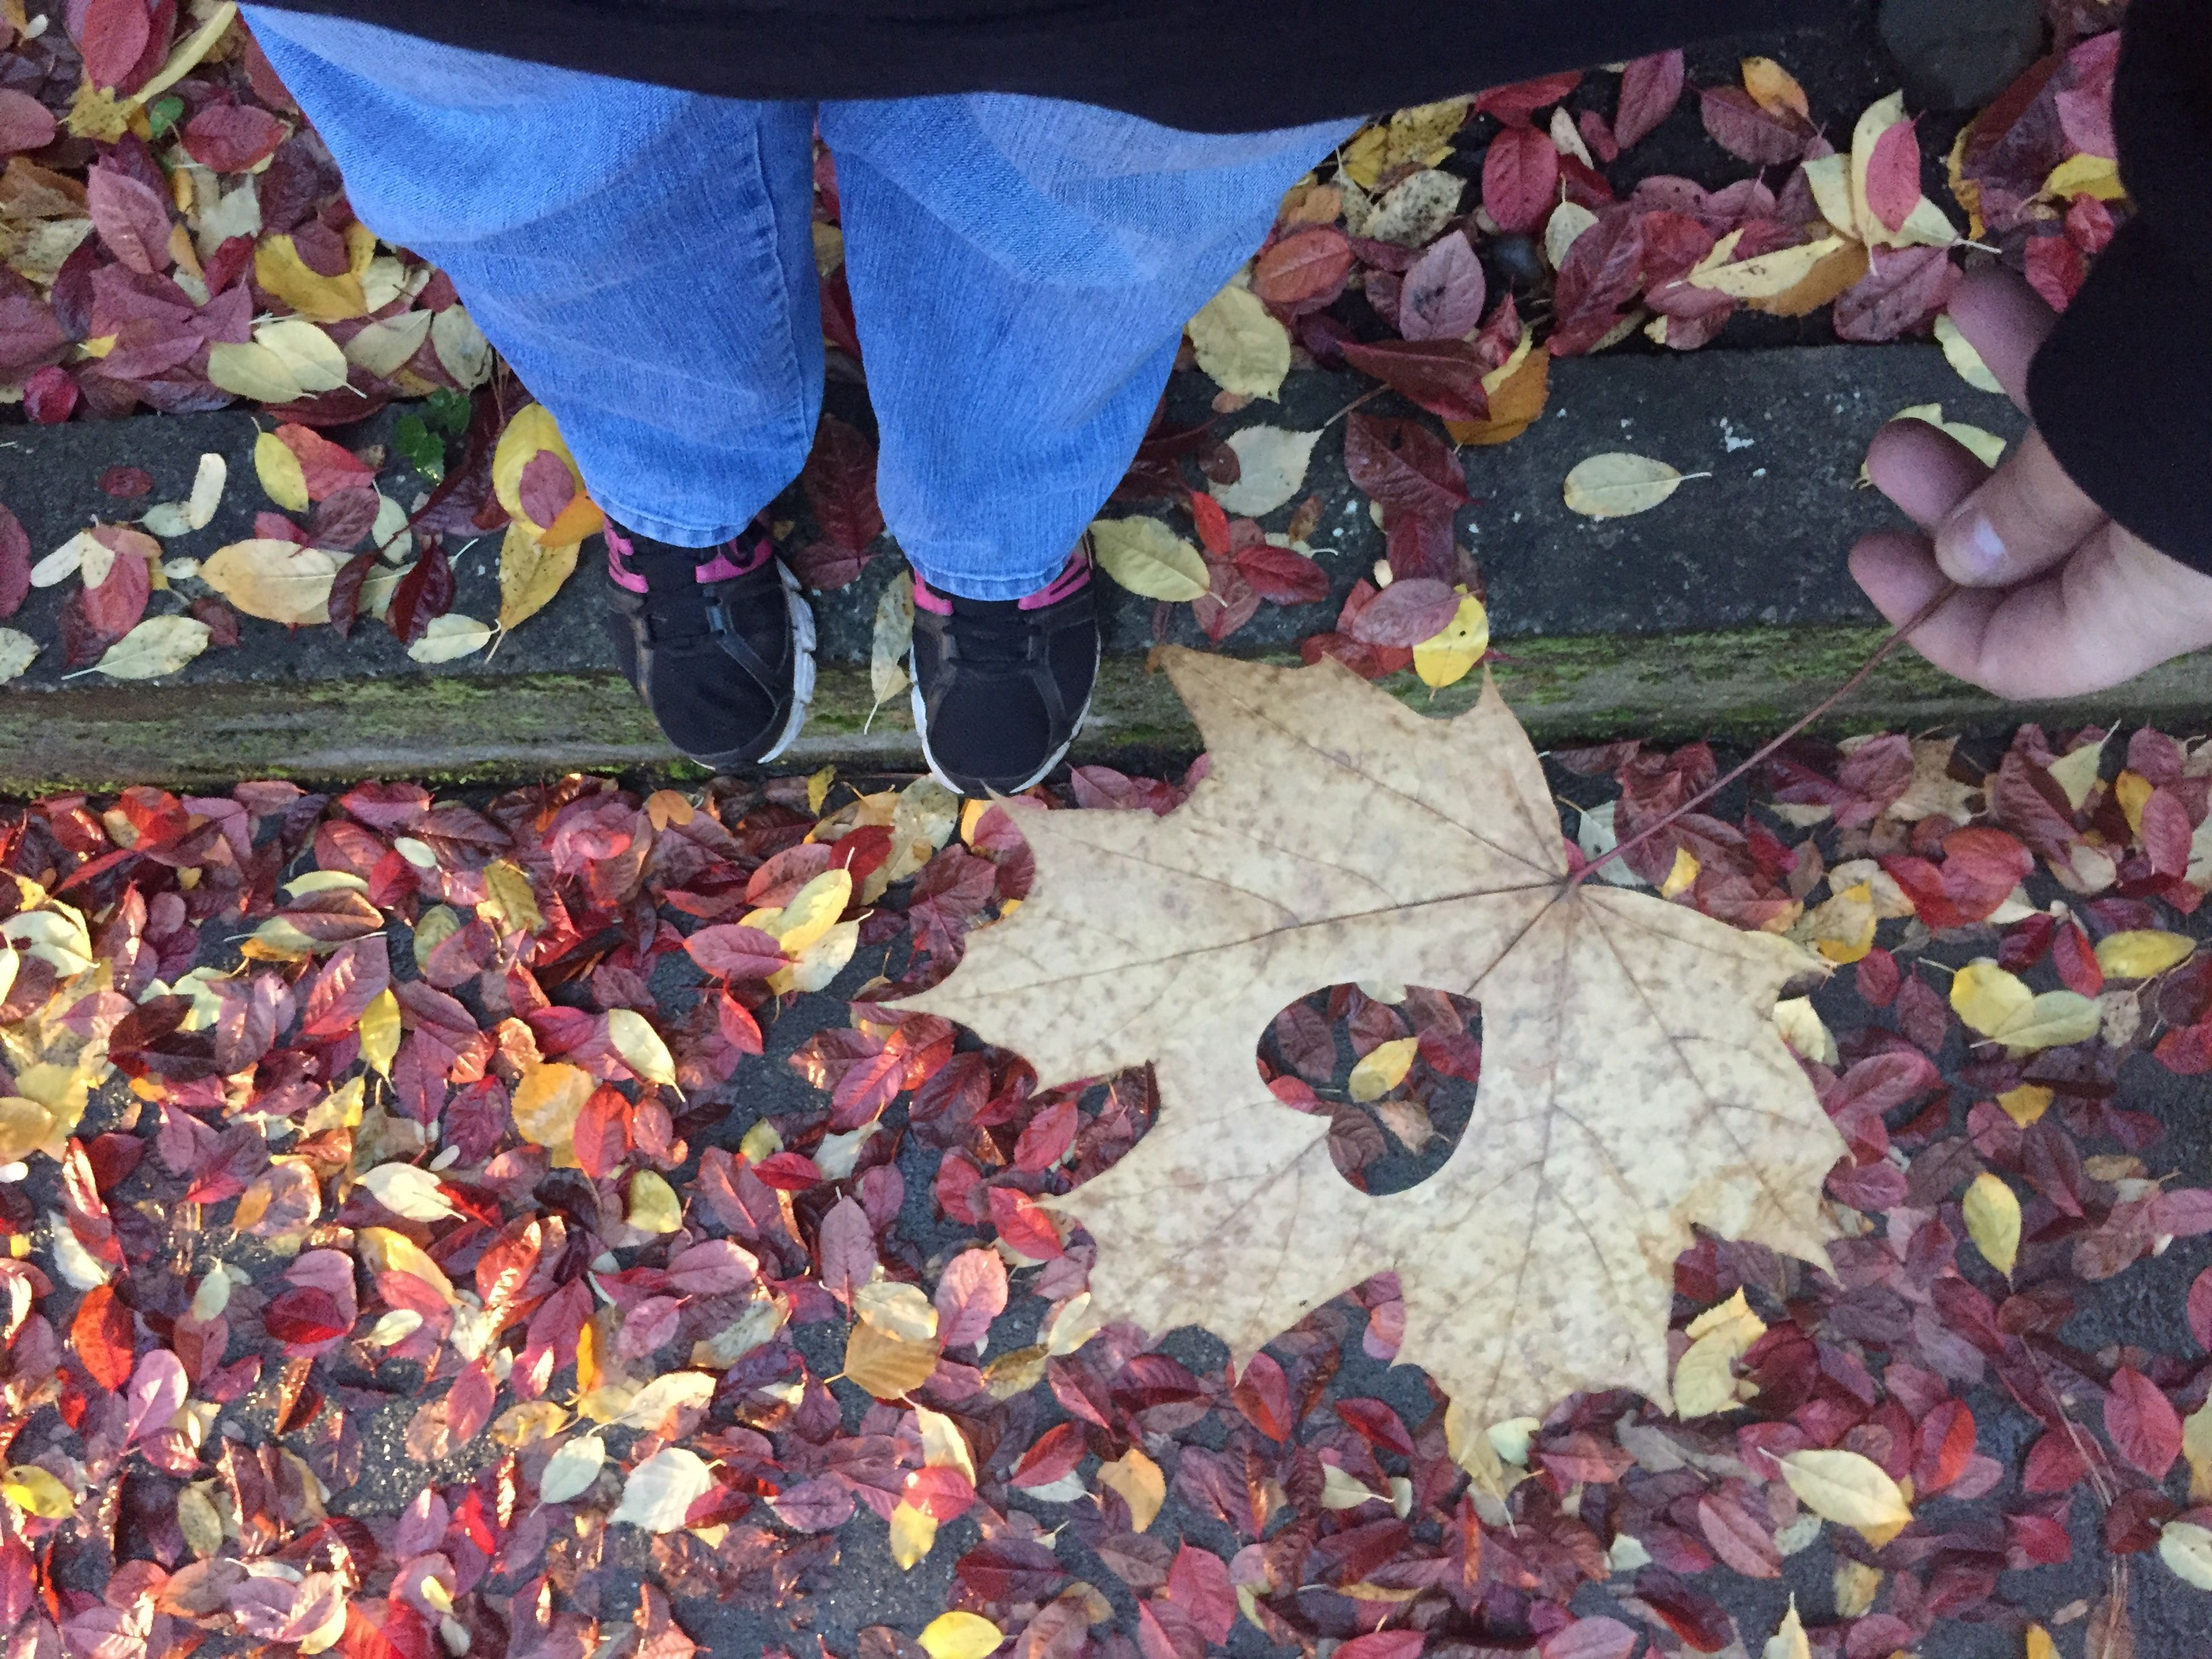 leaf, change, autumn, low section, real people, outdoors, human body part, one person, leaves, day, human leg, men, close-up, food, nature, beauty in nature, human hand, adults only, adult, people